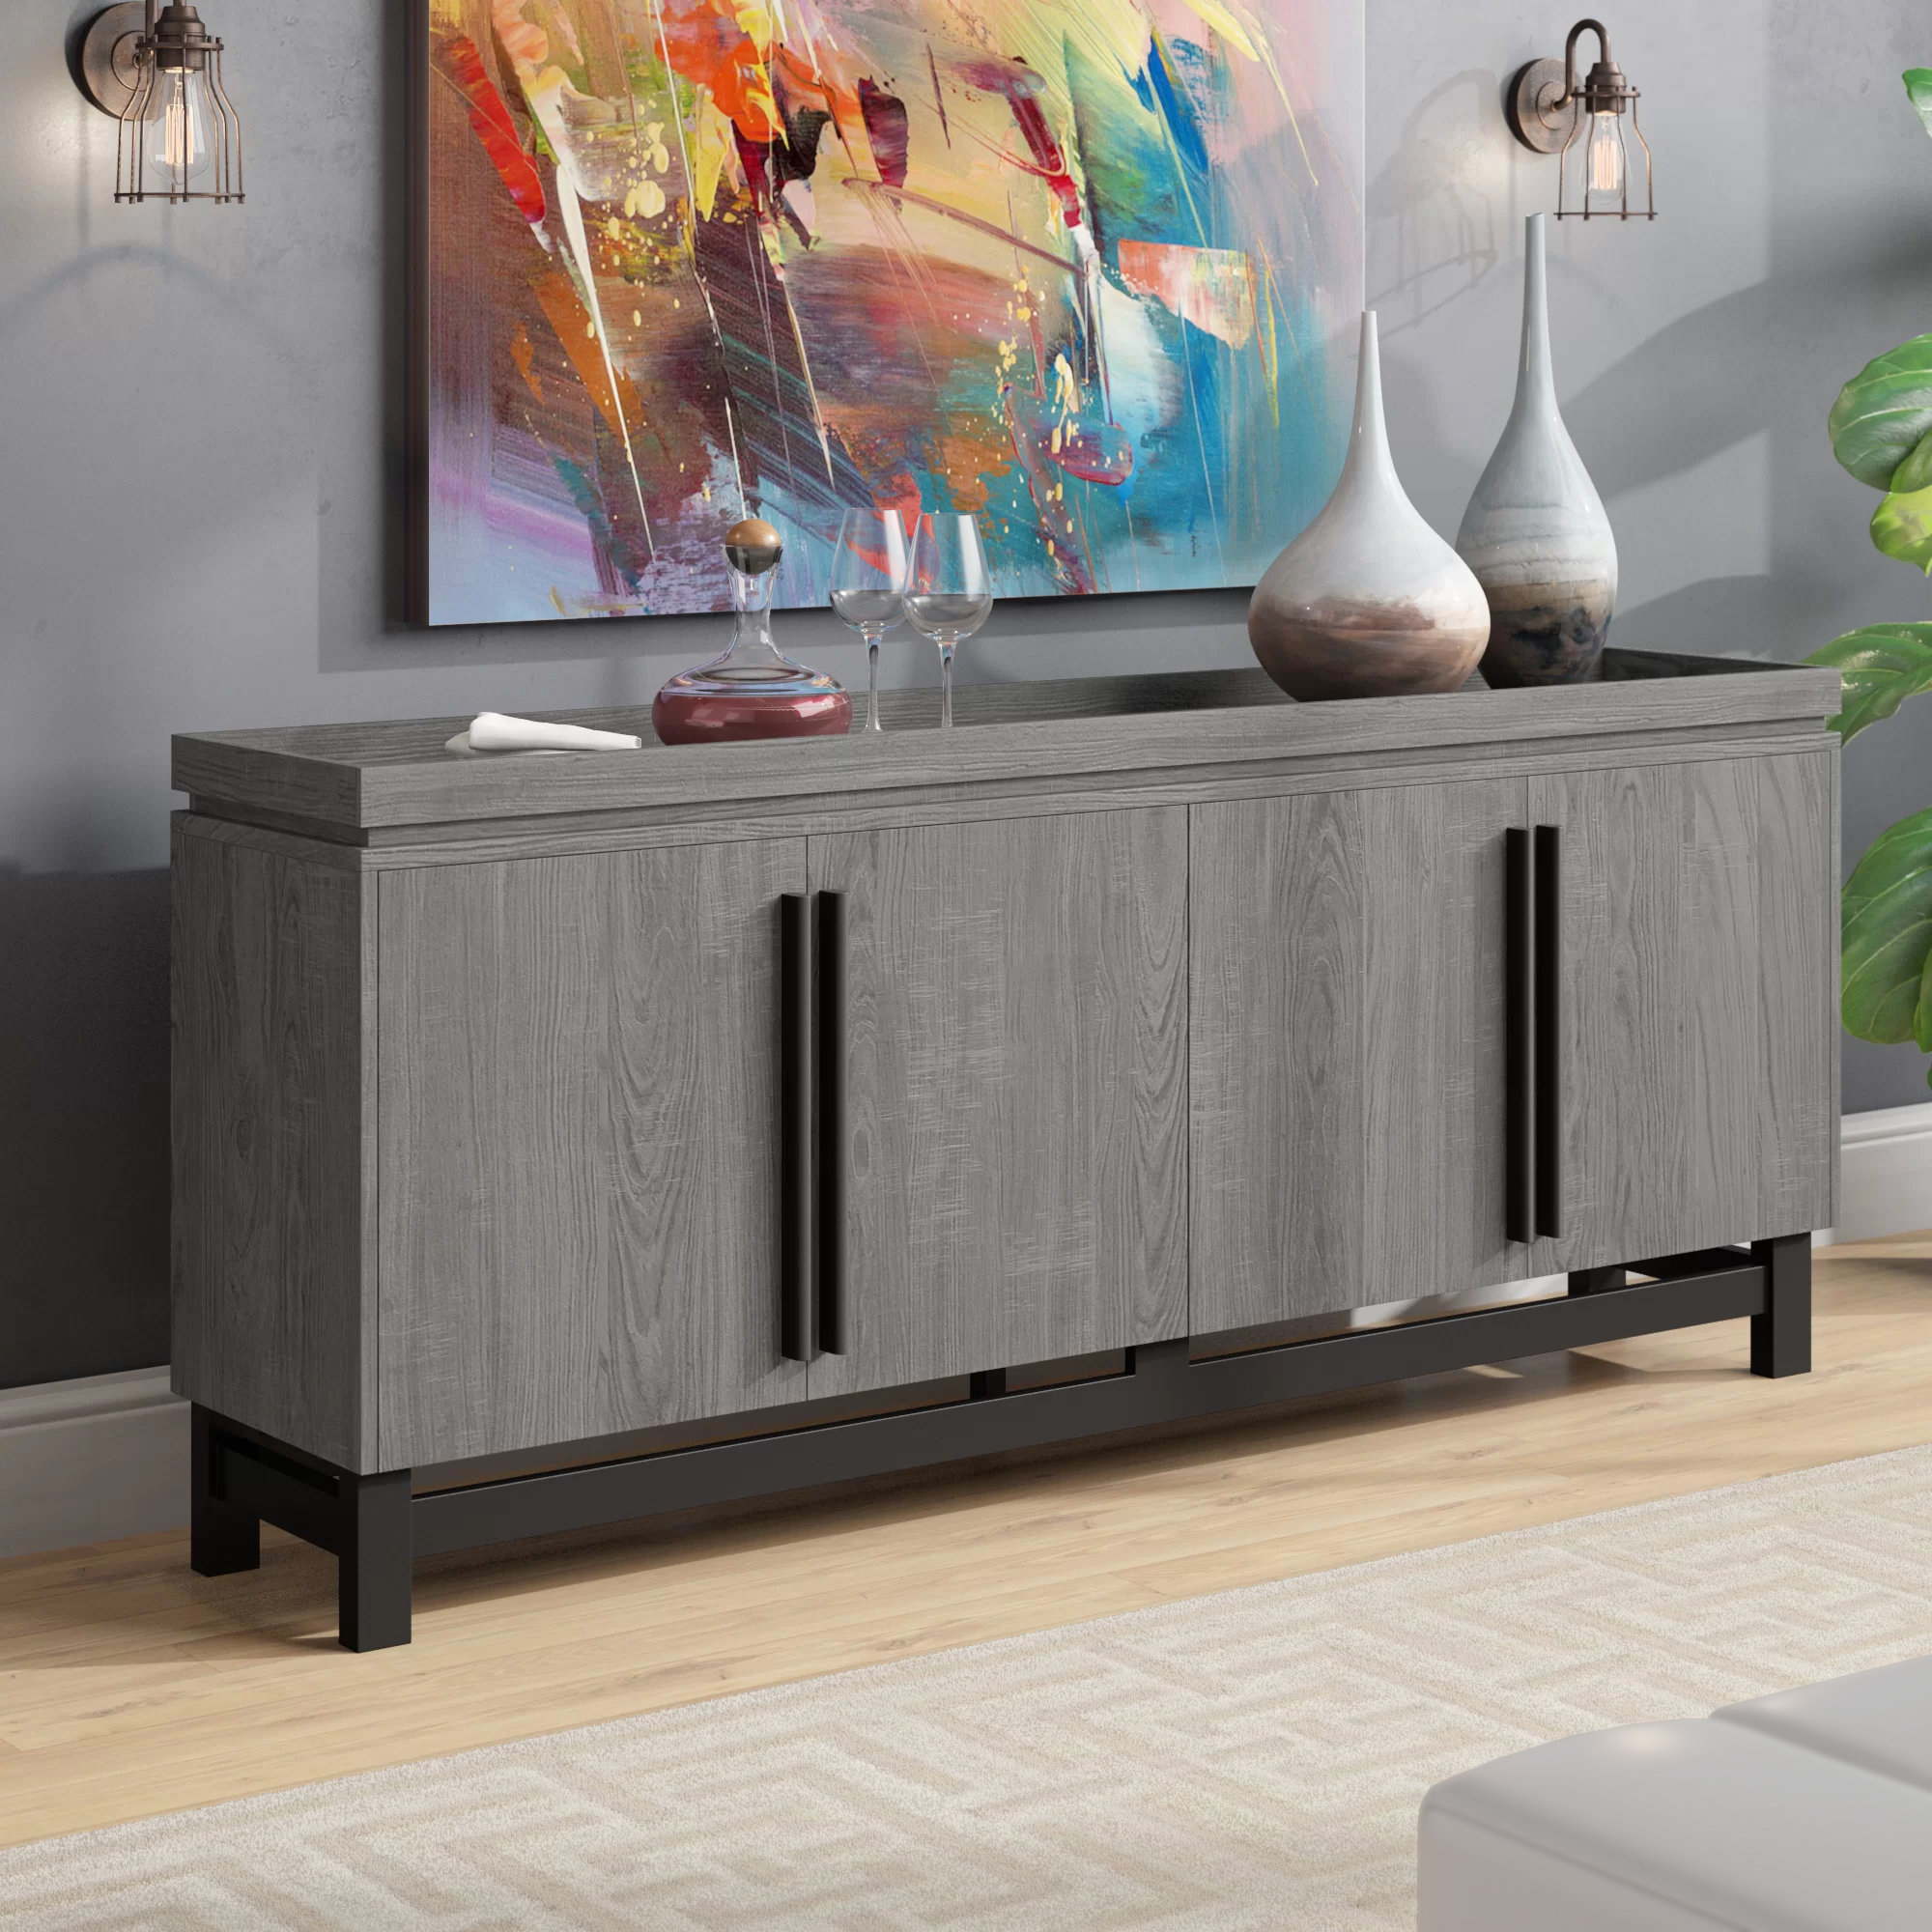 Extra Large Credenza | Wayfair With Regard To Barr Credenzas (Gallery 13 of 20)